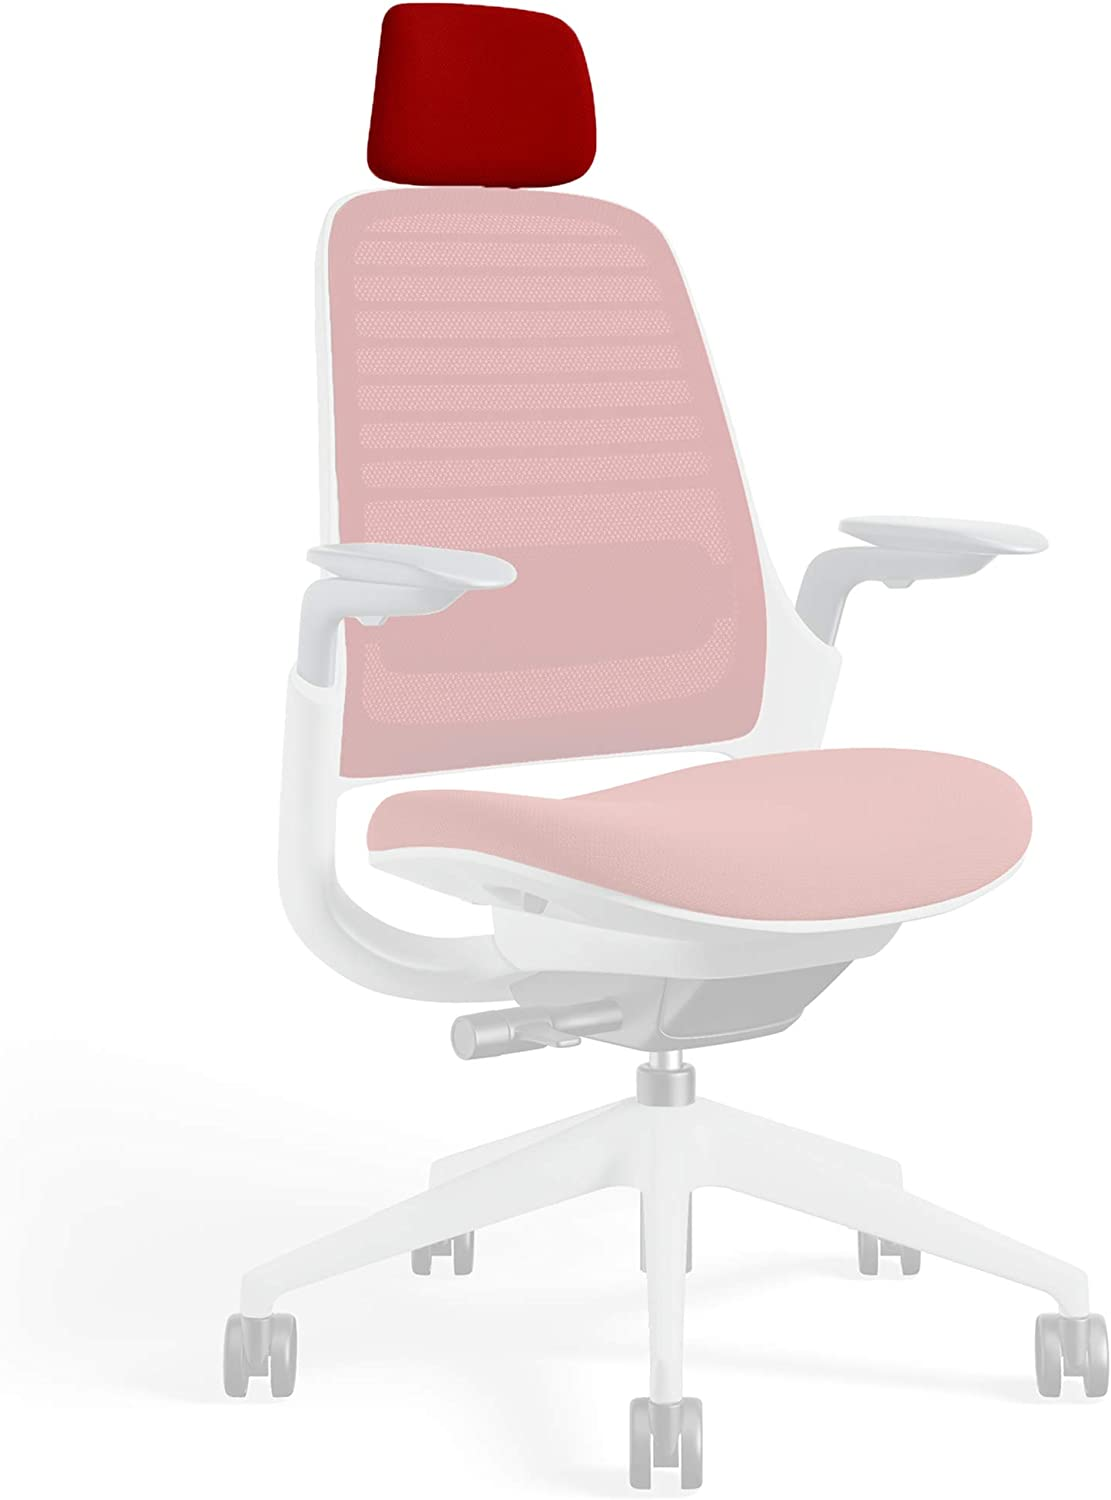 Headrest for Series 1 Task Chair by Steelcase | Seagull Frame, 3D Microknit Fabric | Add-On Part Only (Scarlet)